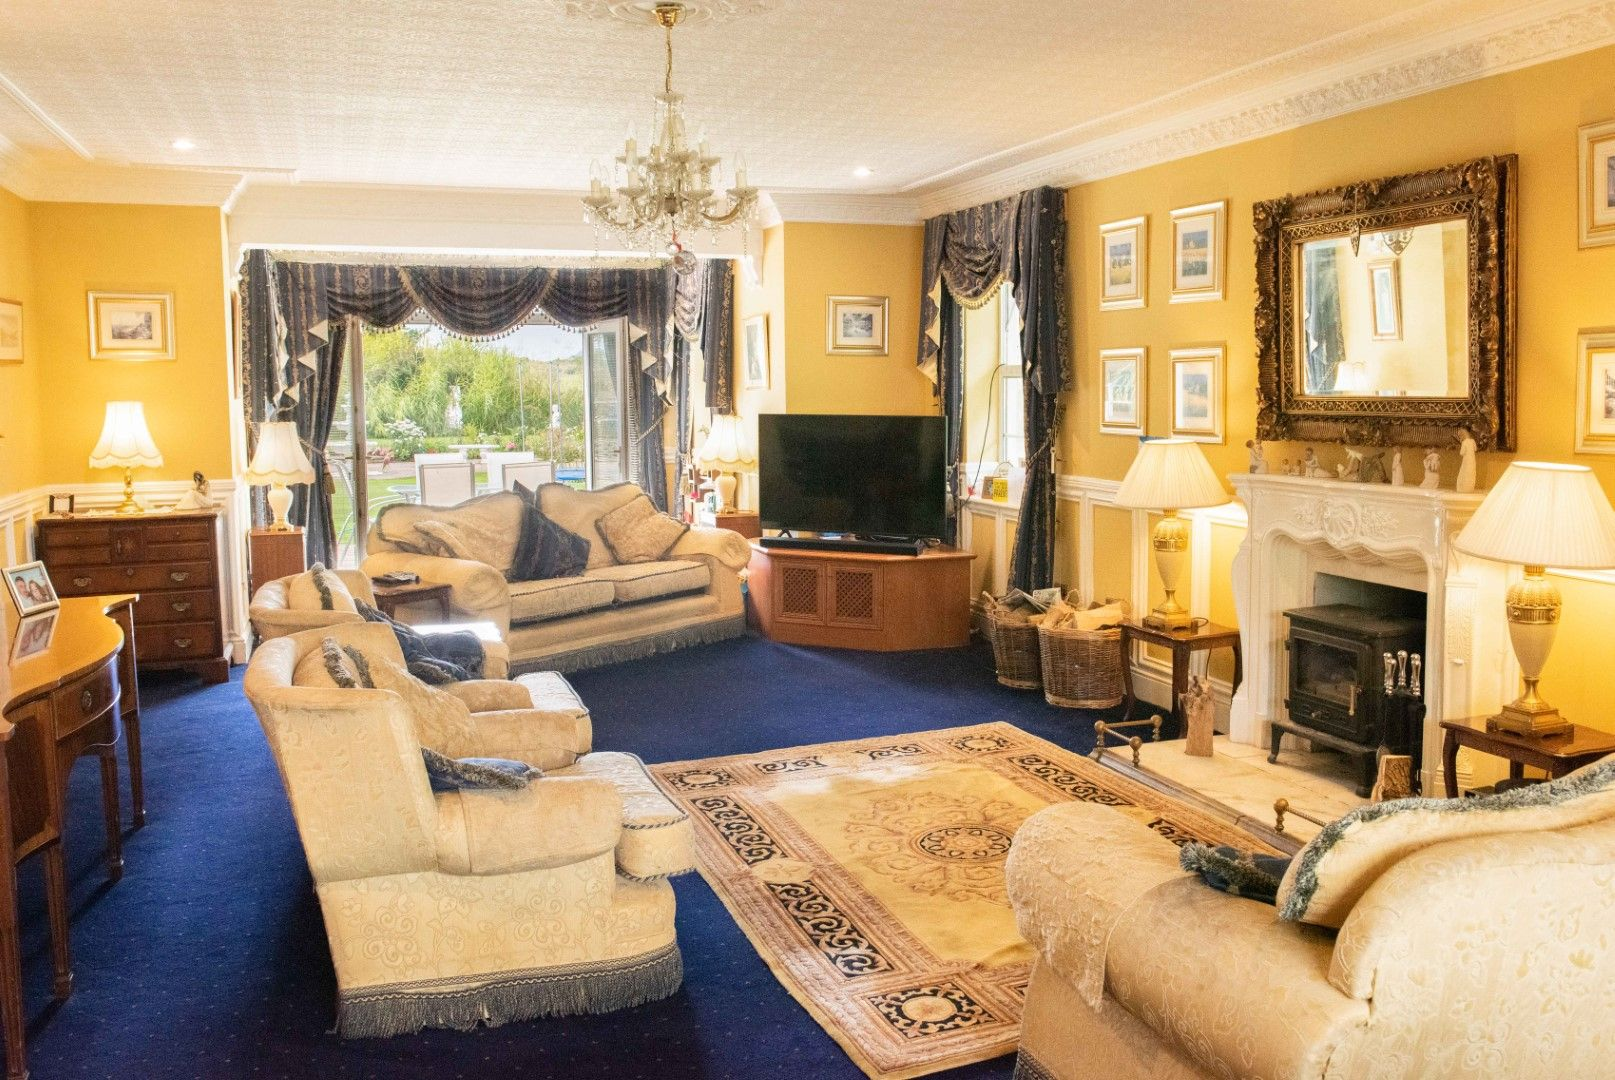 6 bedroom detached house For Sale in Peel - Property photograph